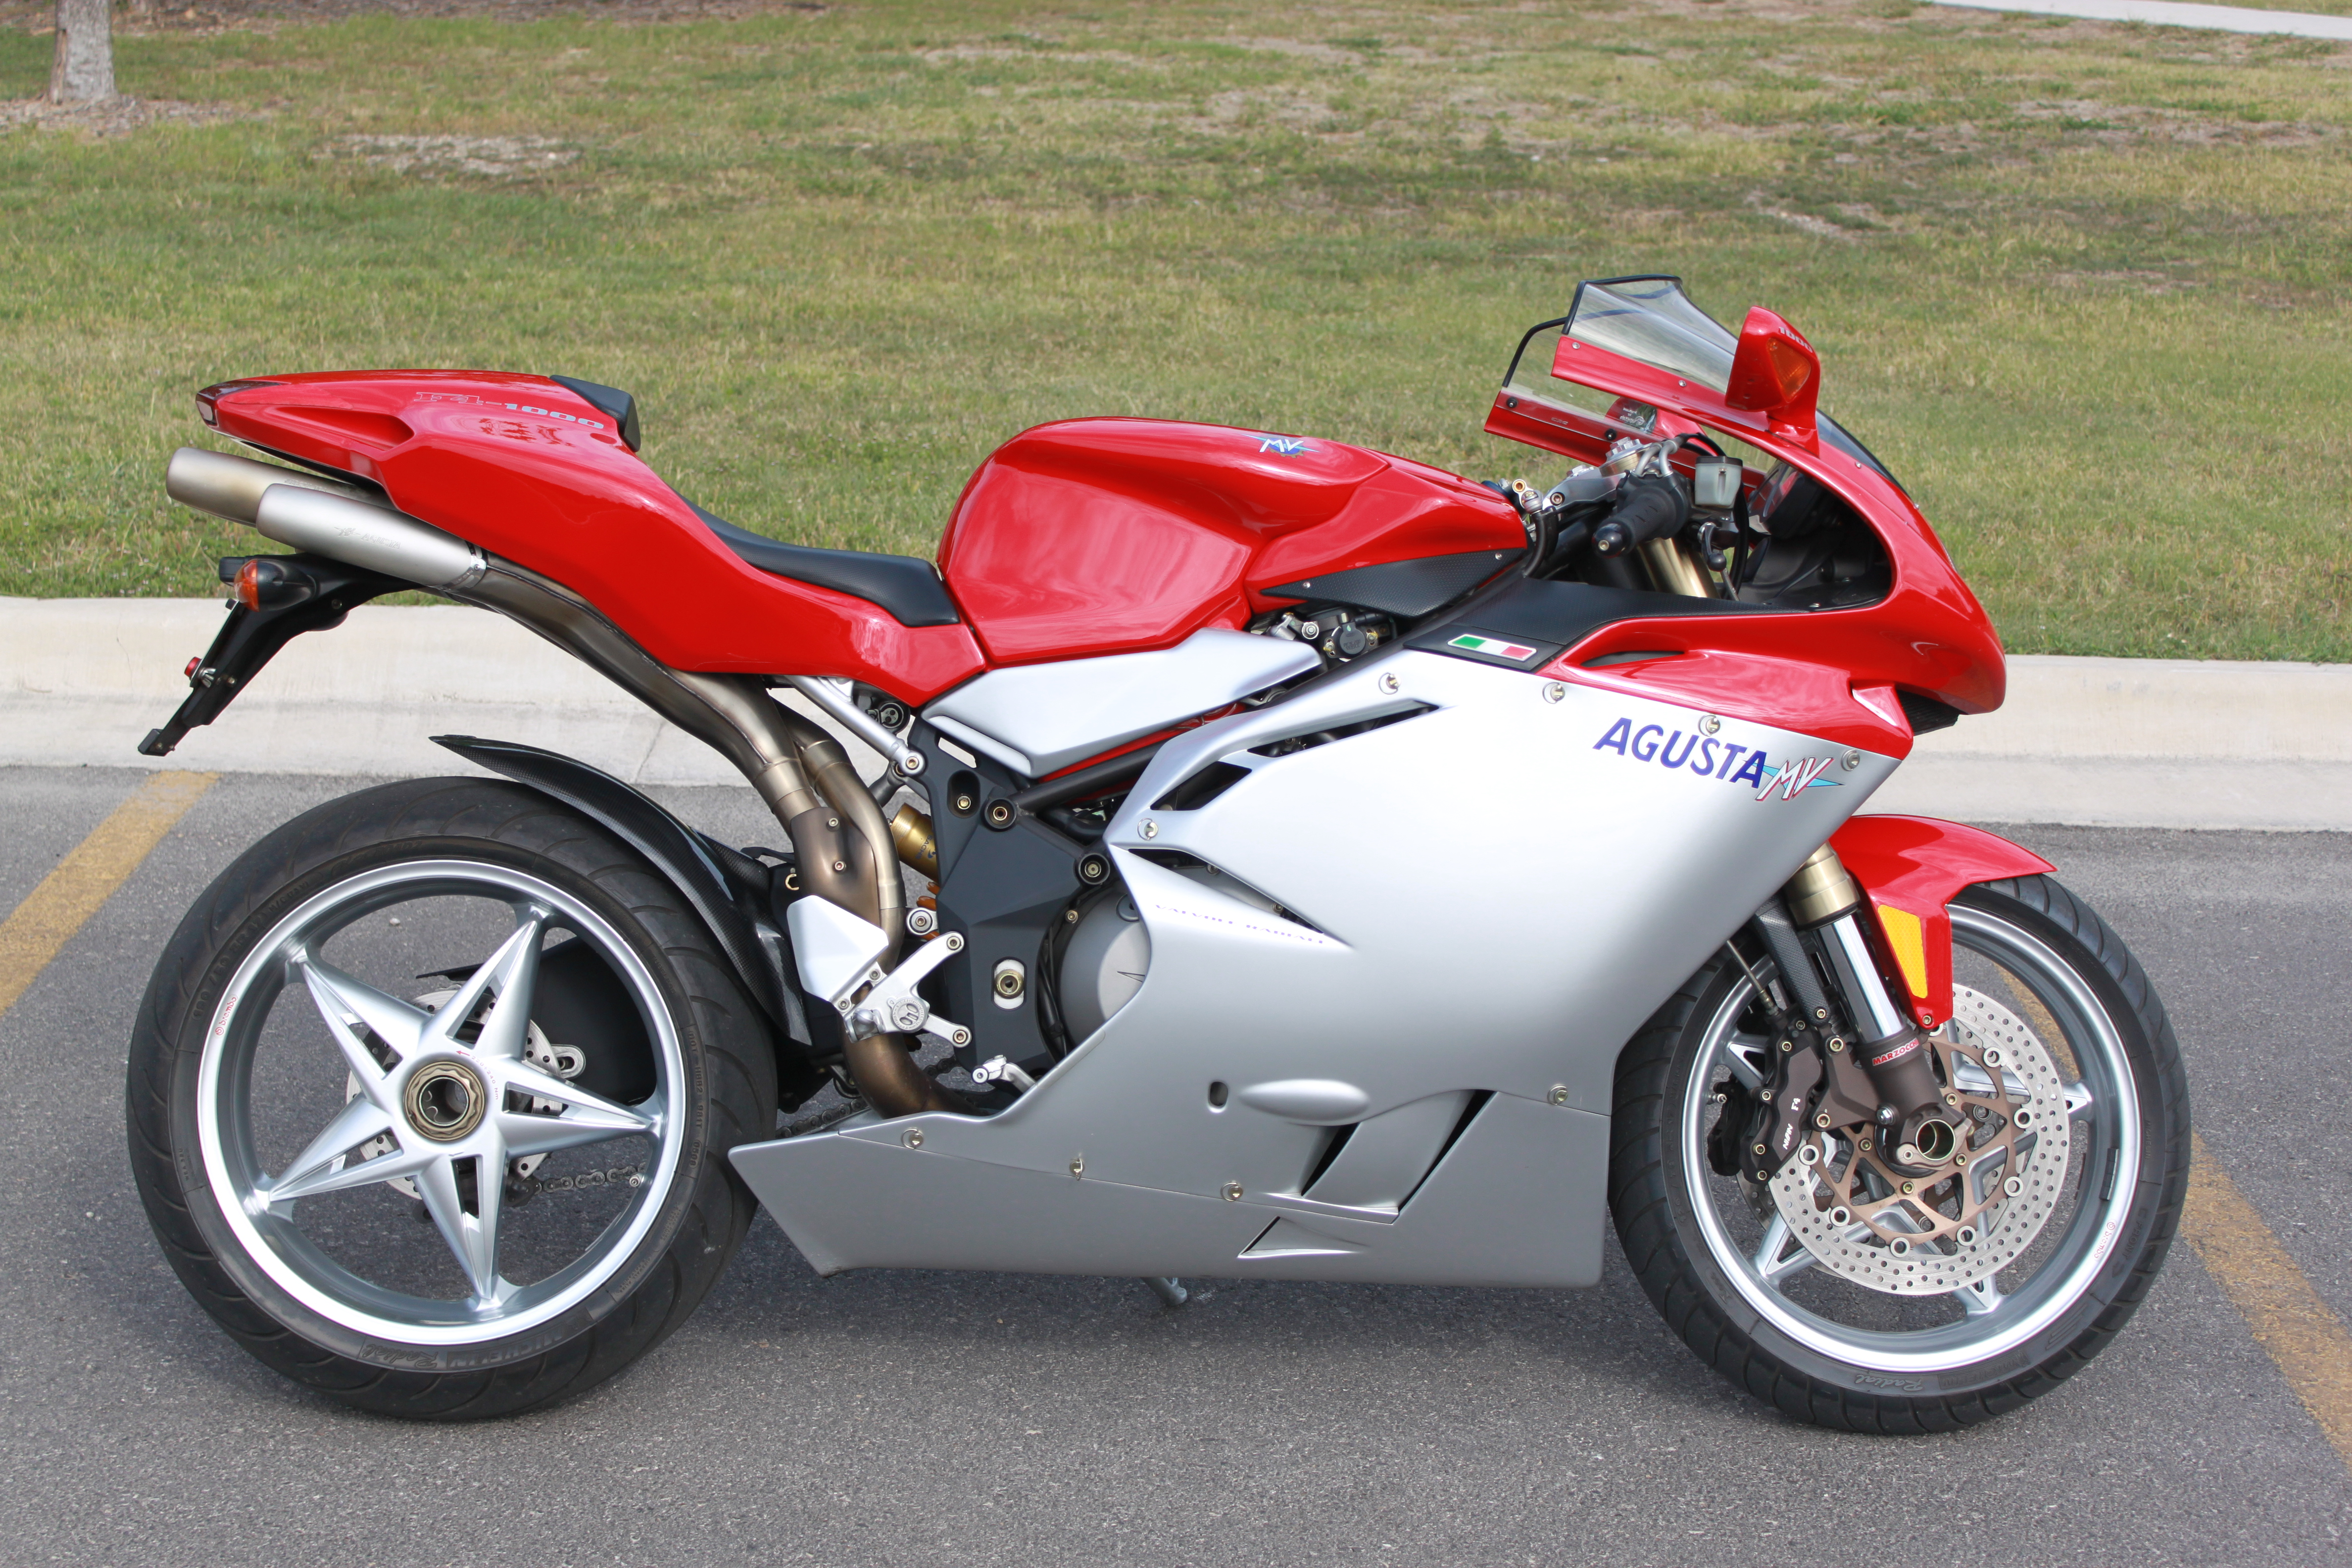 MV Agusta F4 1000 S 2006 images #113591